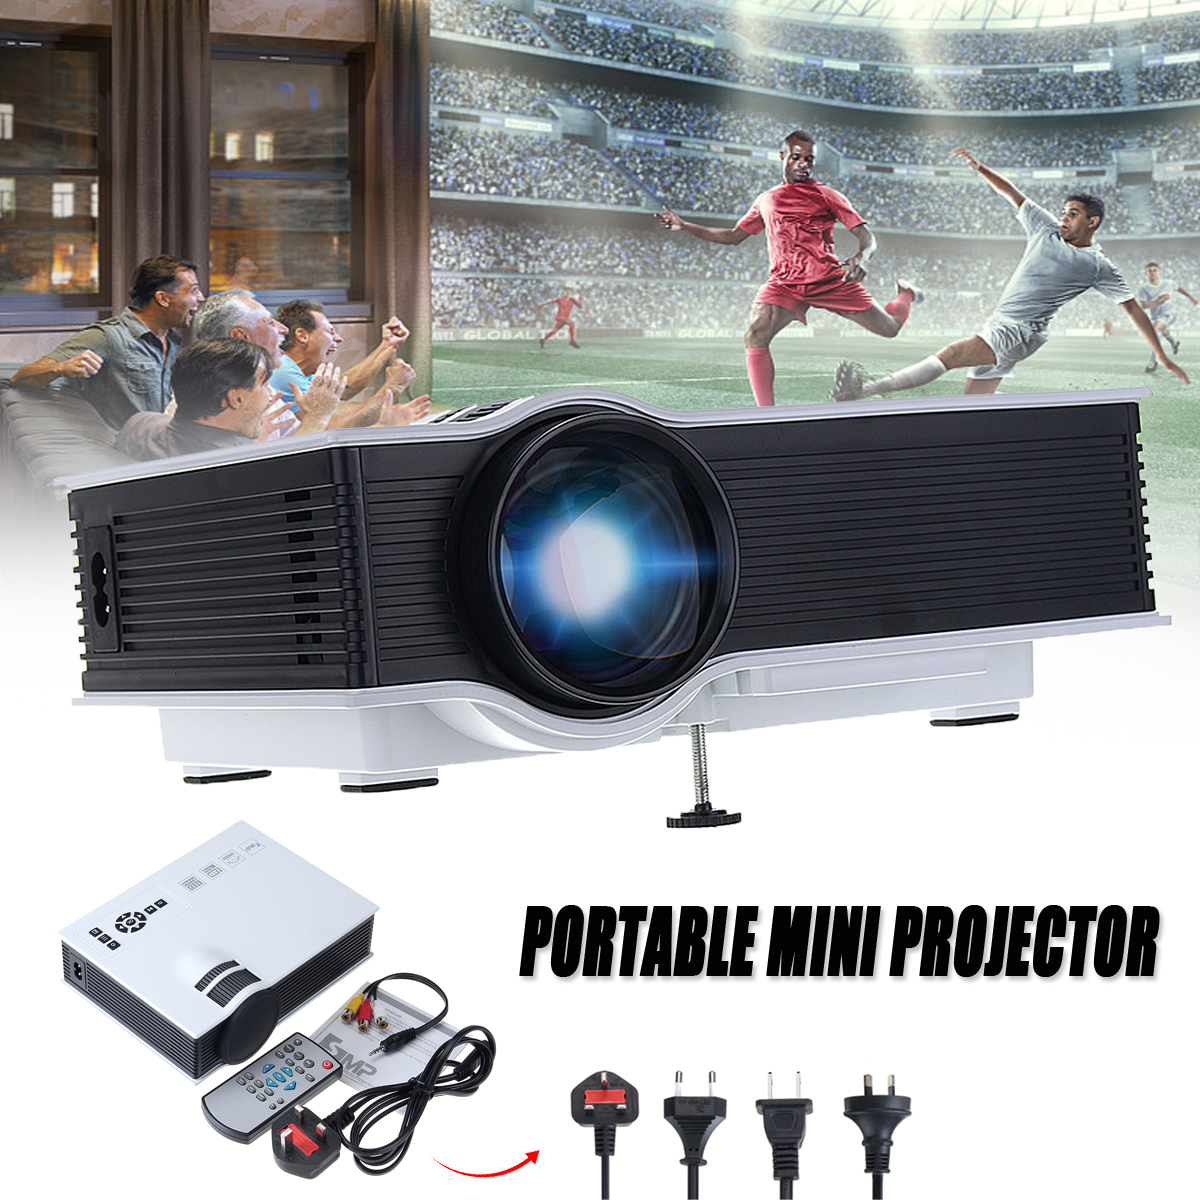 For GIGXON G40 1200 LM 1080P Led Projector Home Theater Full HD Compatible Mini Projector HDMI for Home Cinema TV Laptop Gam телескопы бинокли gigxon 200